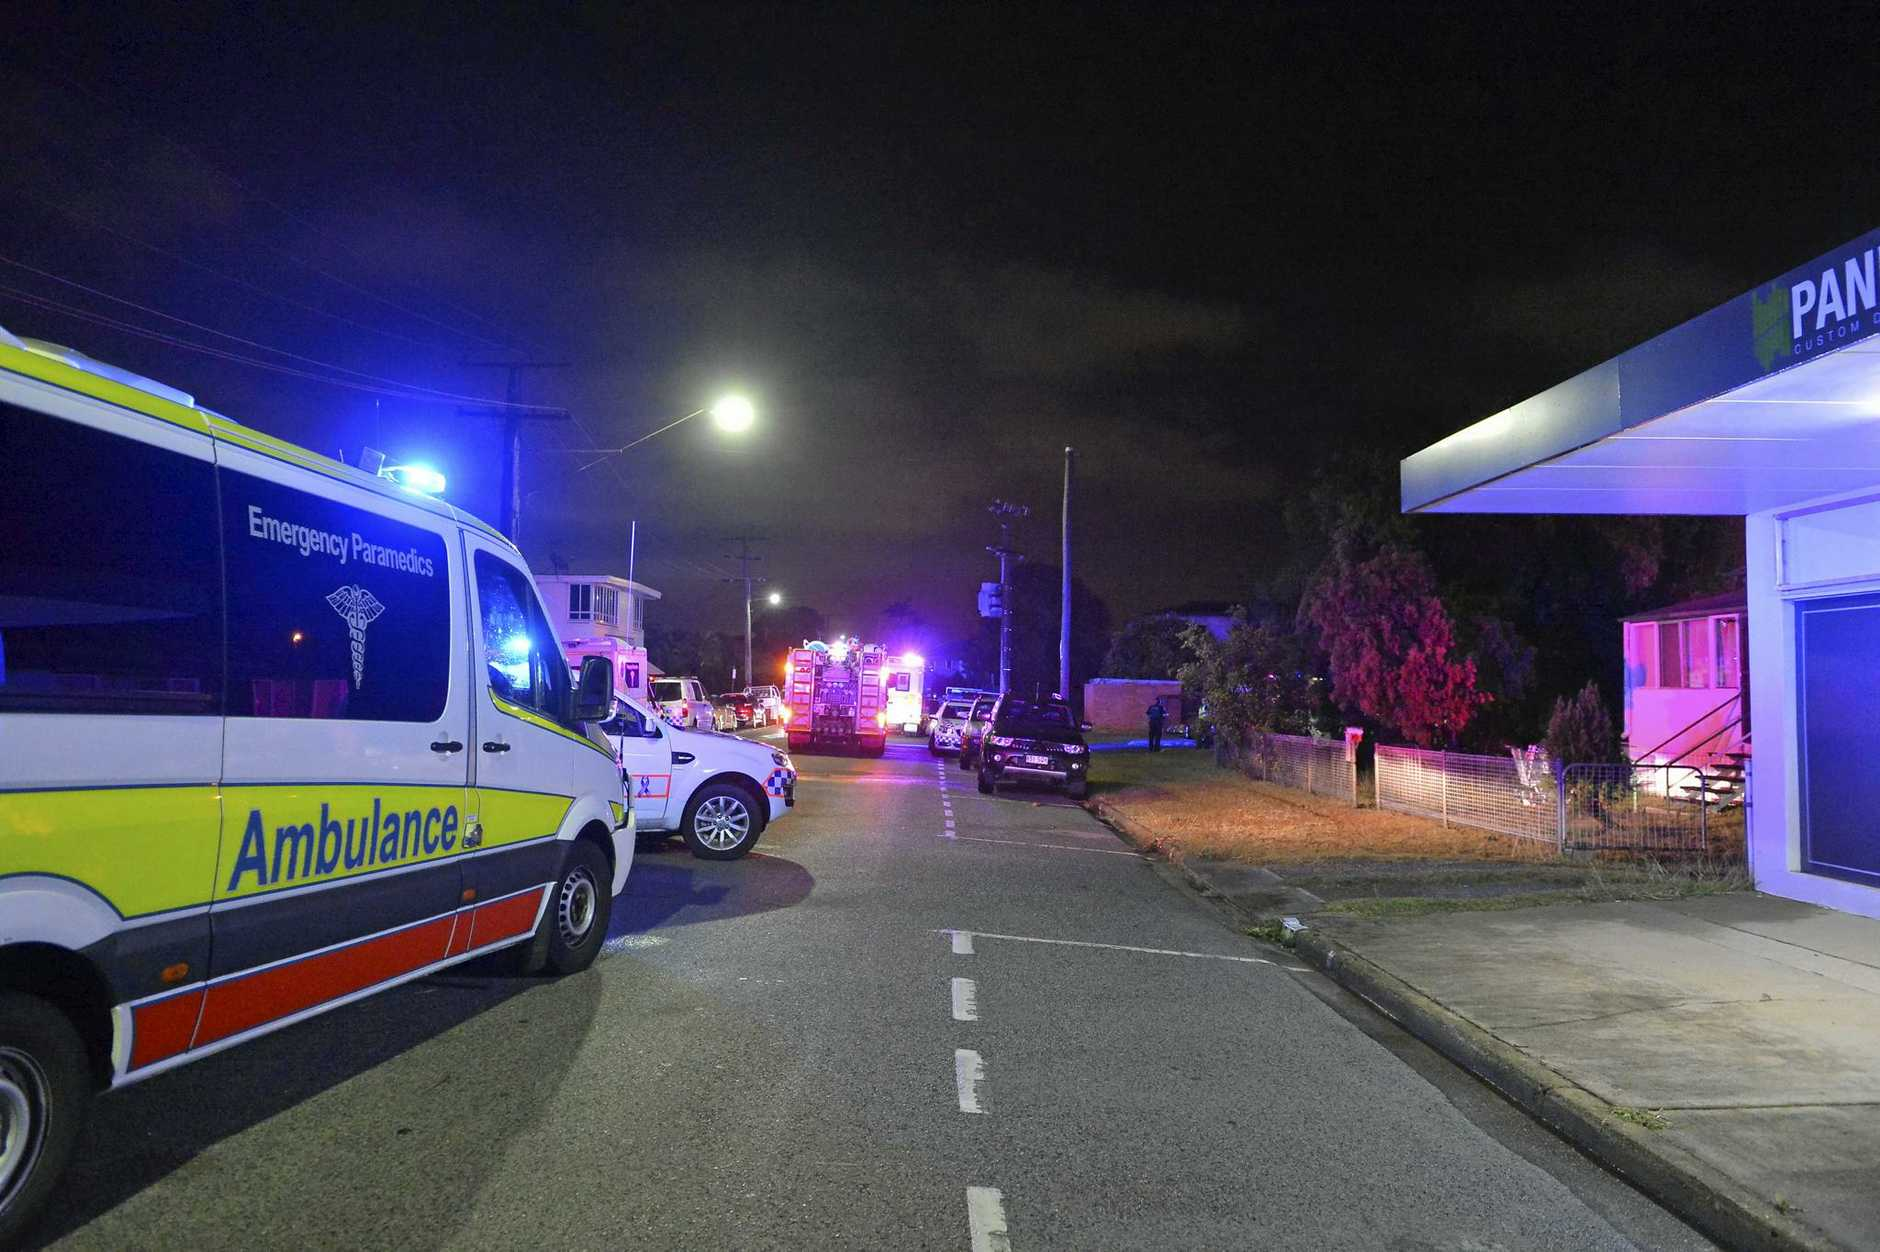 The accident at the Queensland Rail Institute hall carpark took the life of Ailsa Pershouse and seriously injured Margaret Baldwin on December 9, 2016.